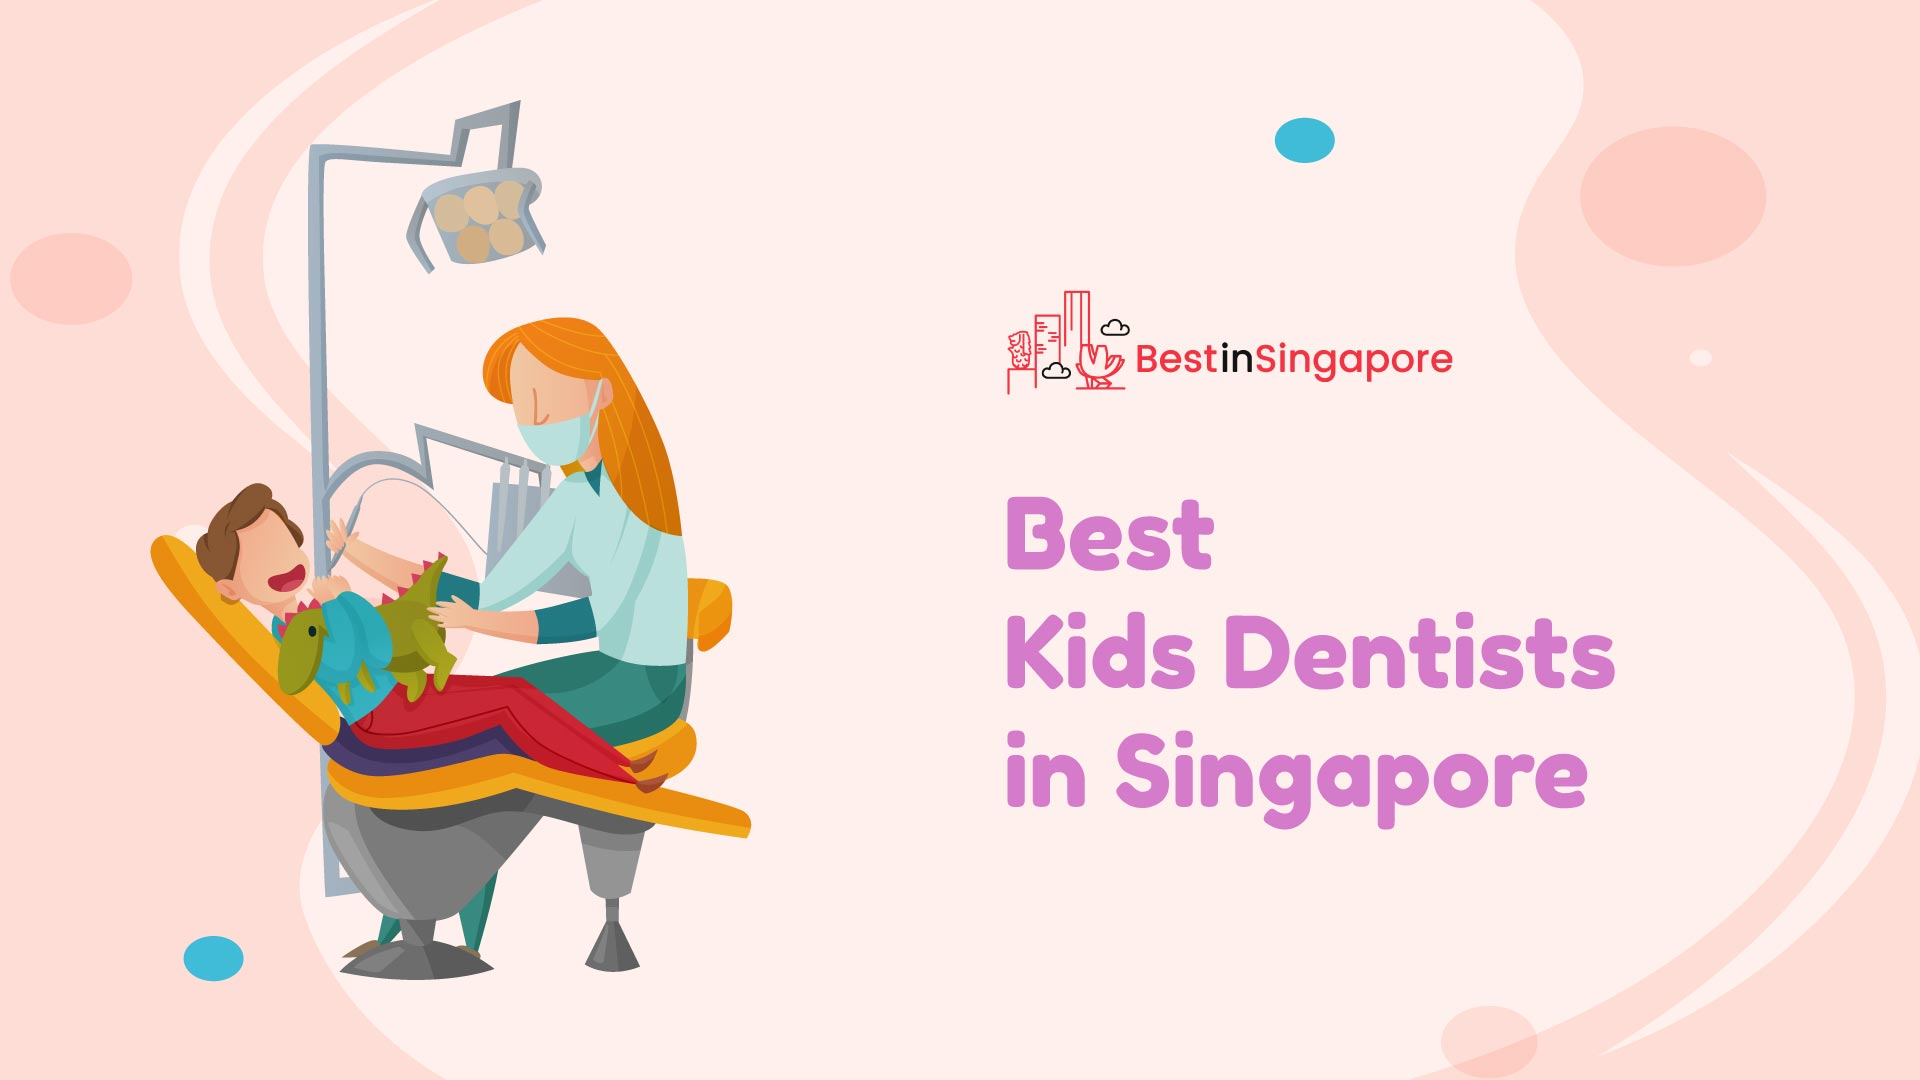 Best Kids Dentists in Singapore